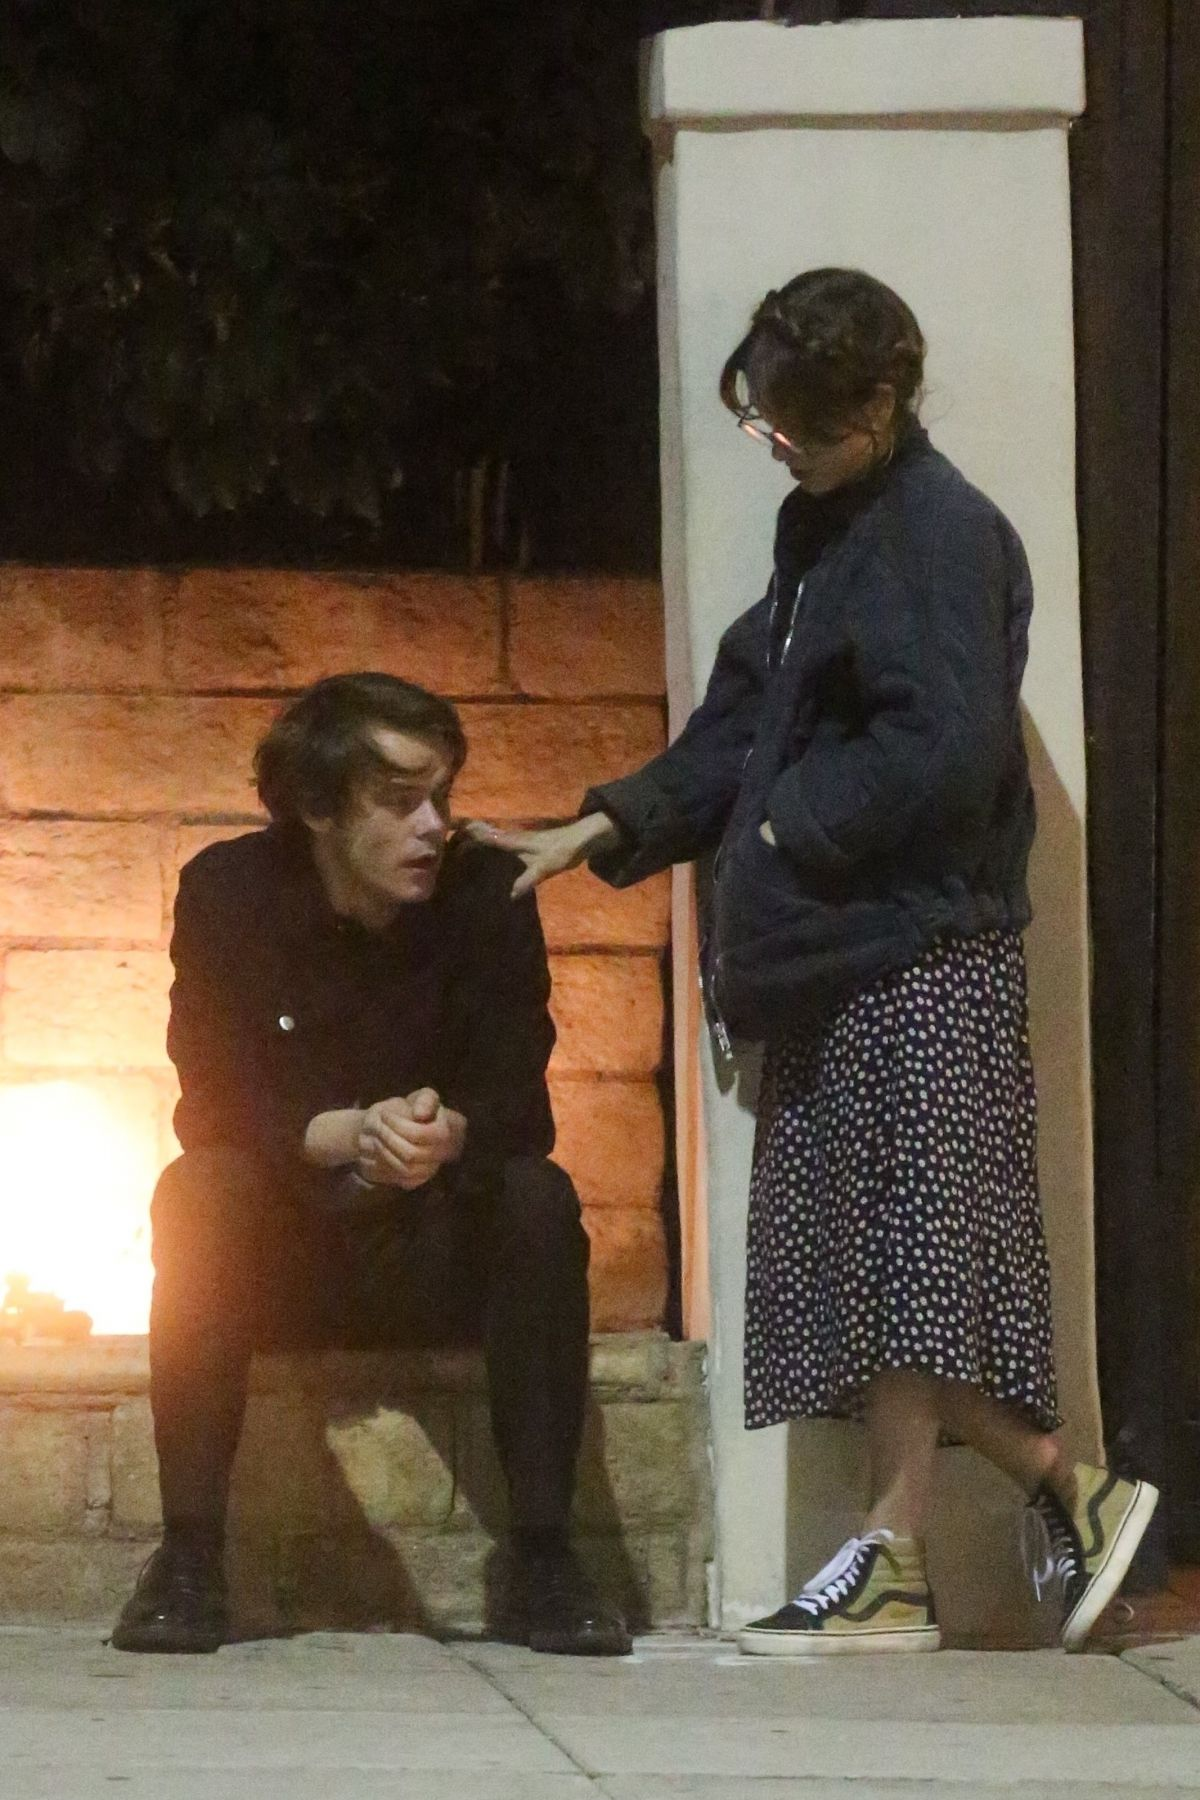 Charlie Heaton Amp Natalia Dyer Have A Sushi Dinner Date At